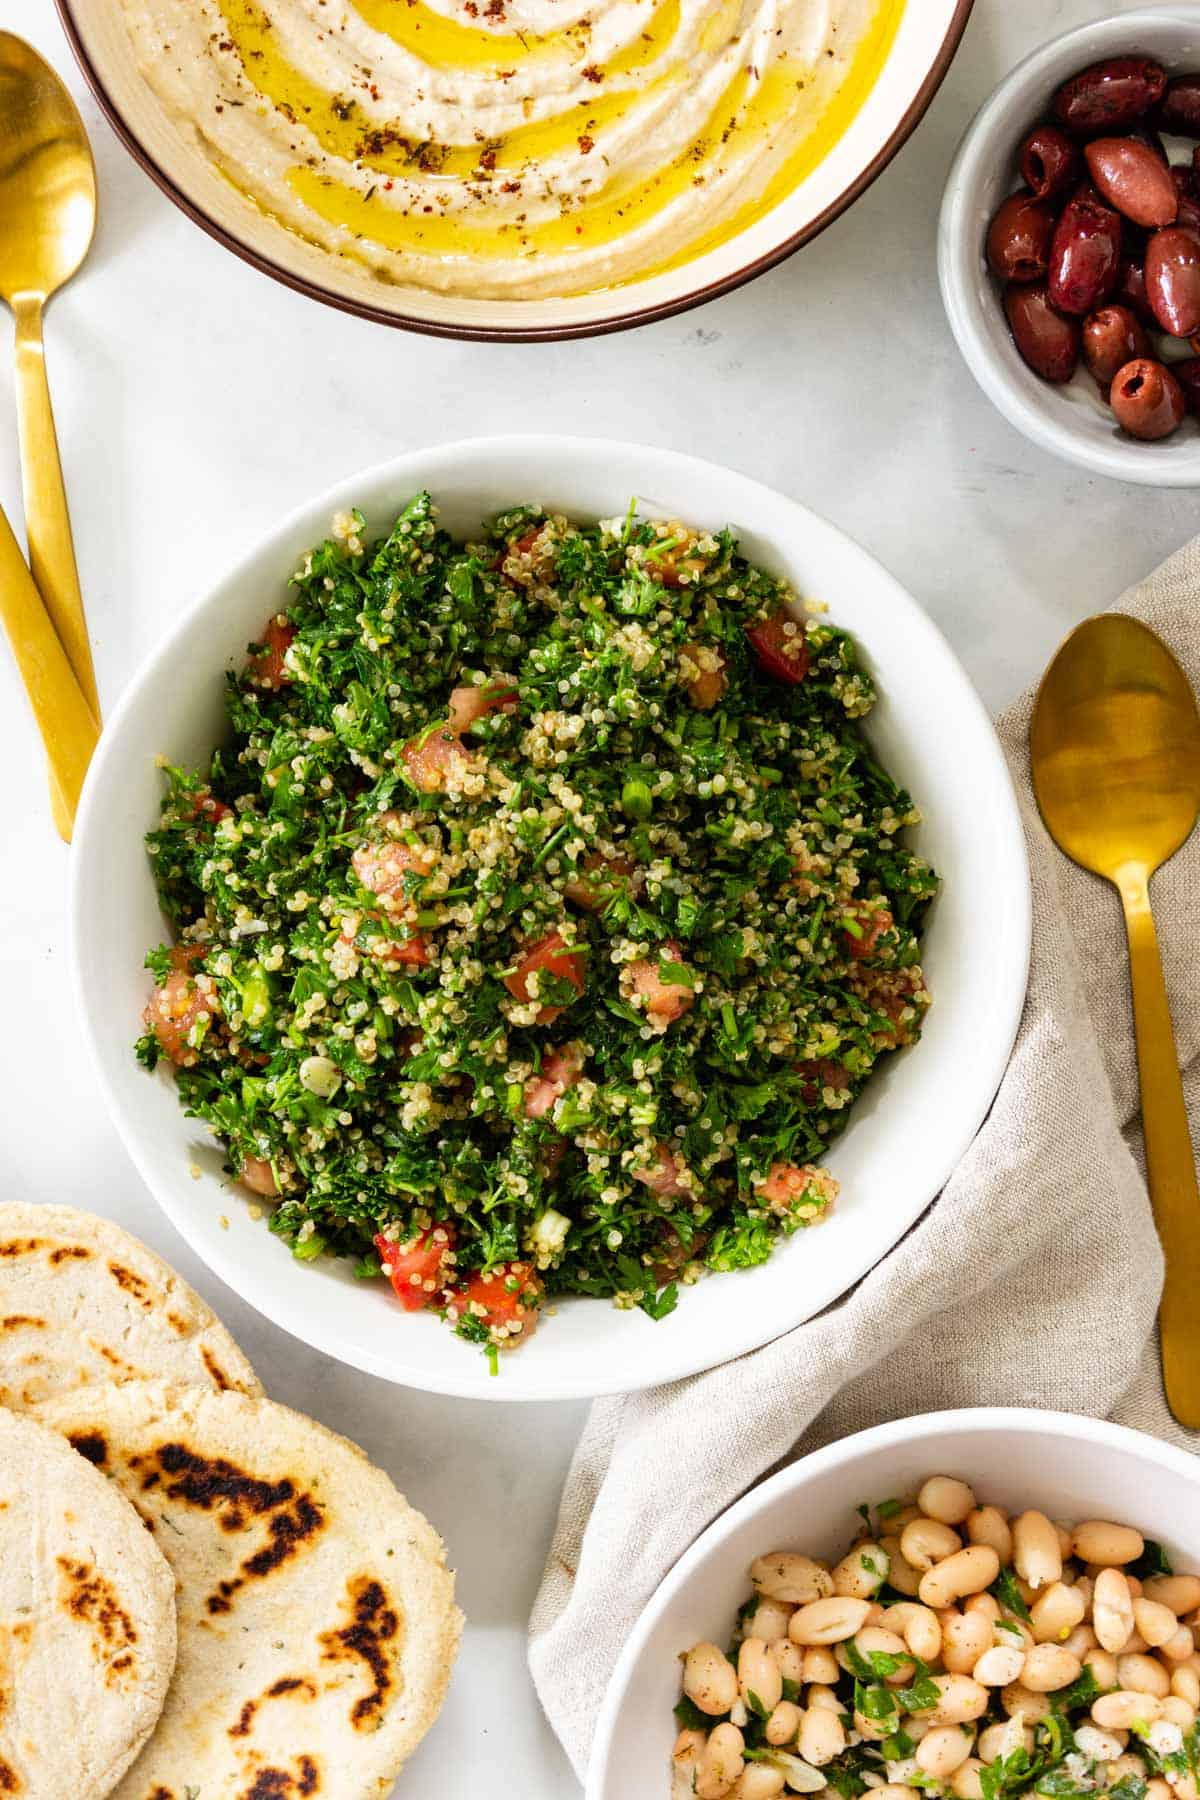 A bowl of quinoa tabbouleh sits on a table with other small plates of food.